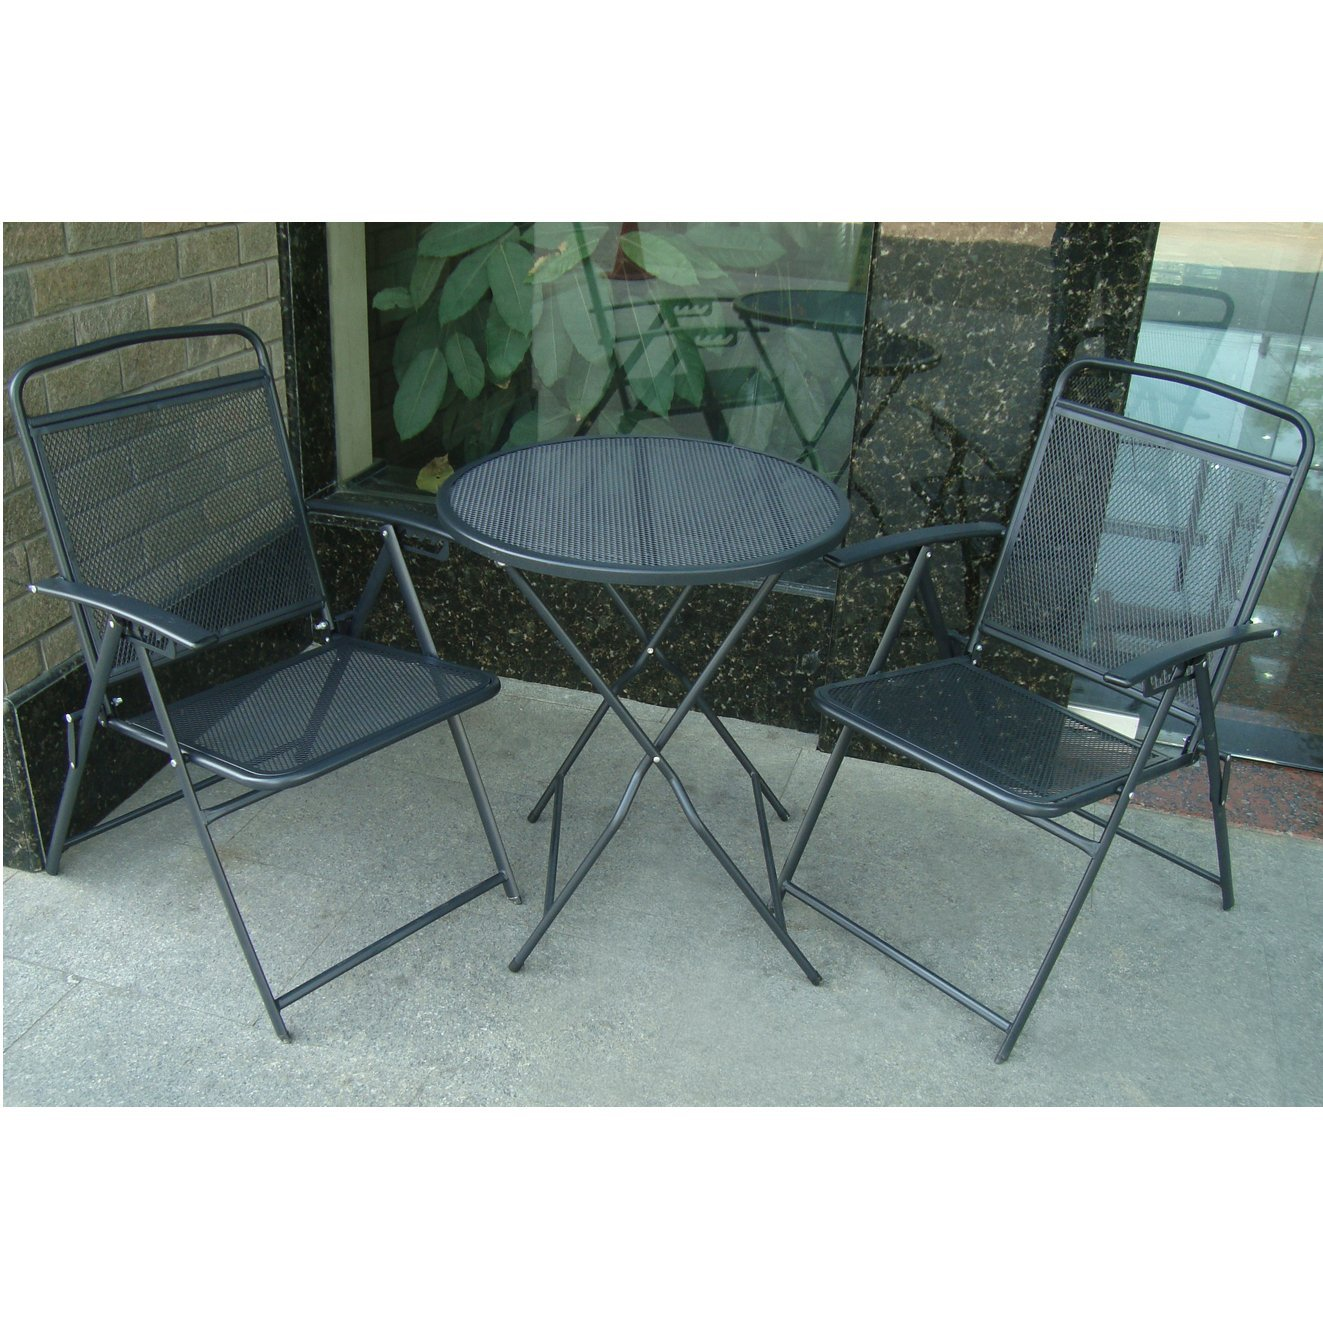 BenefitUSA S-405-BLACK Patio Table and Chair Set, Black